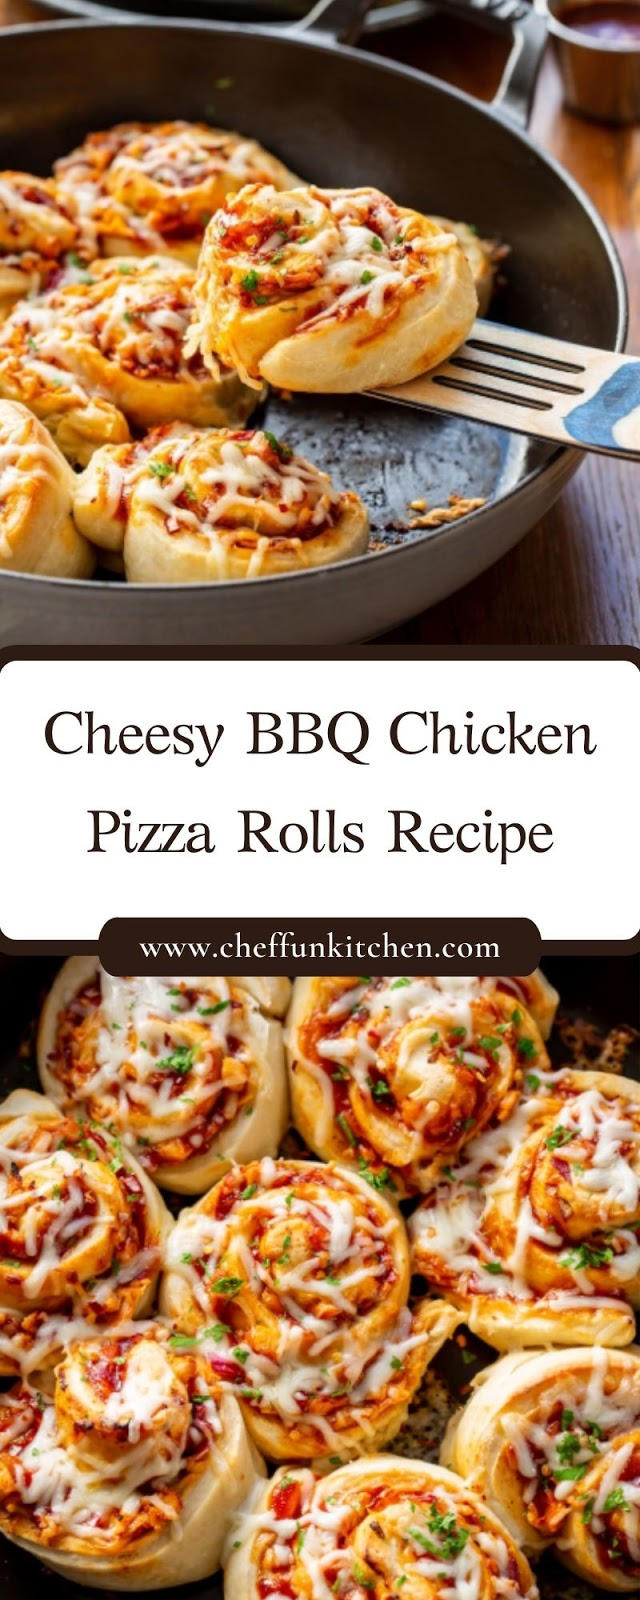 Cheesy BBQ Chicken Pizza Rolls Recipe